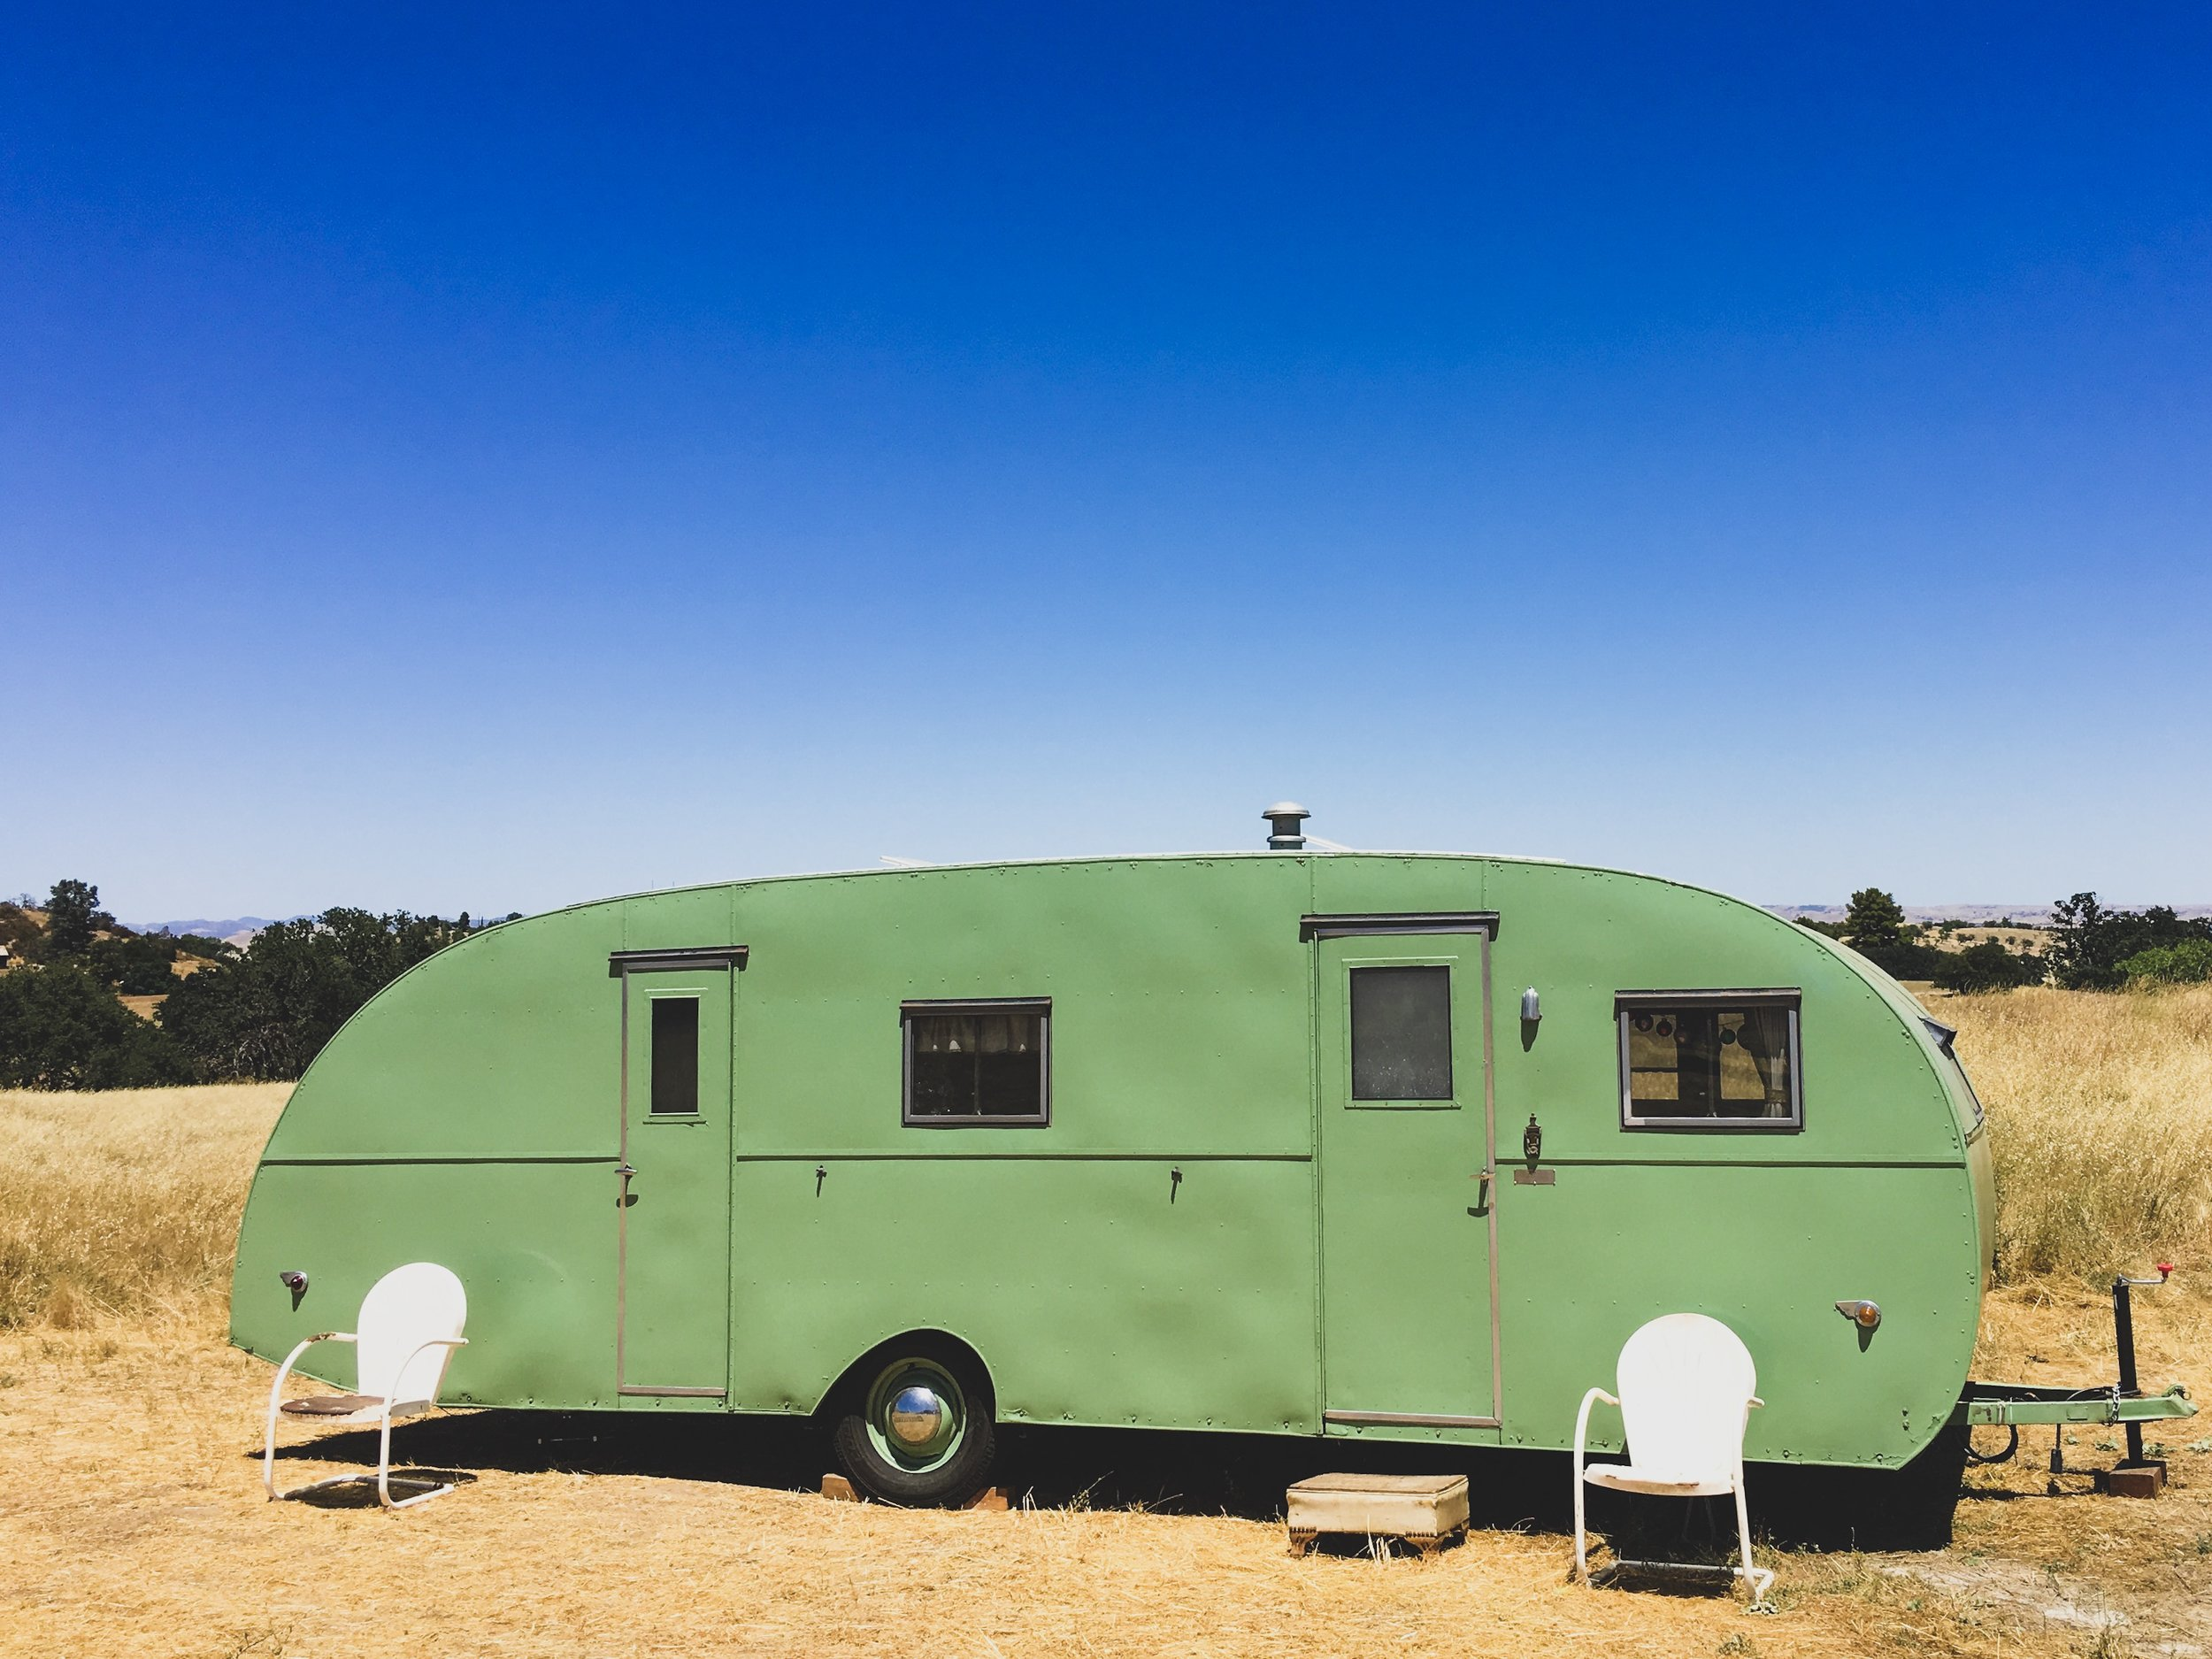 1950'S GREEN MASTERBILT VINTAGE TRAILER AVAILABLE FOR MOVIE AND PRODUCTION RENTALS, FOR BACKSTAGE LOUNGES, FILMING, TV & MOVIES, FOR HAIR AND MAKEUP, COMMERCIAL AND CATALOGUE PHOTO SHOOTS & MORE